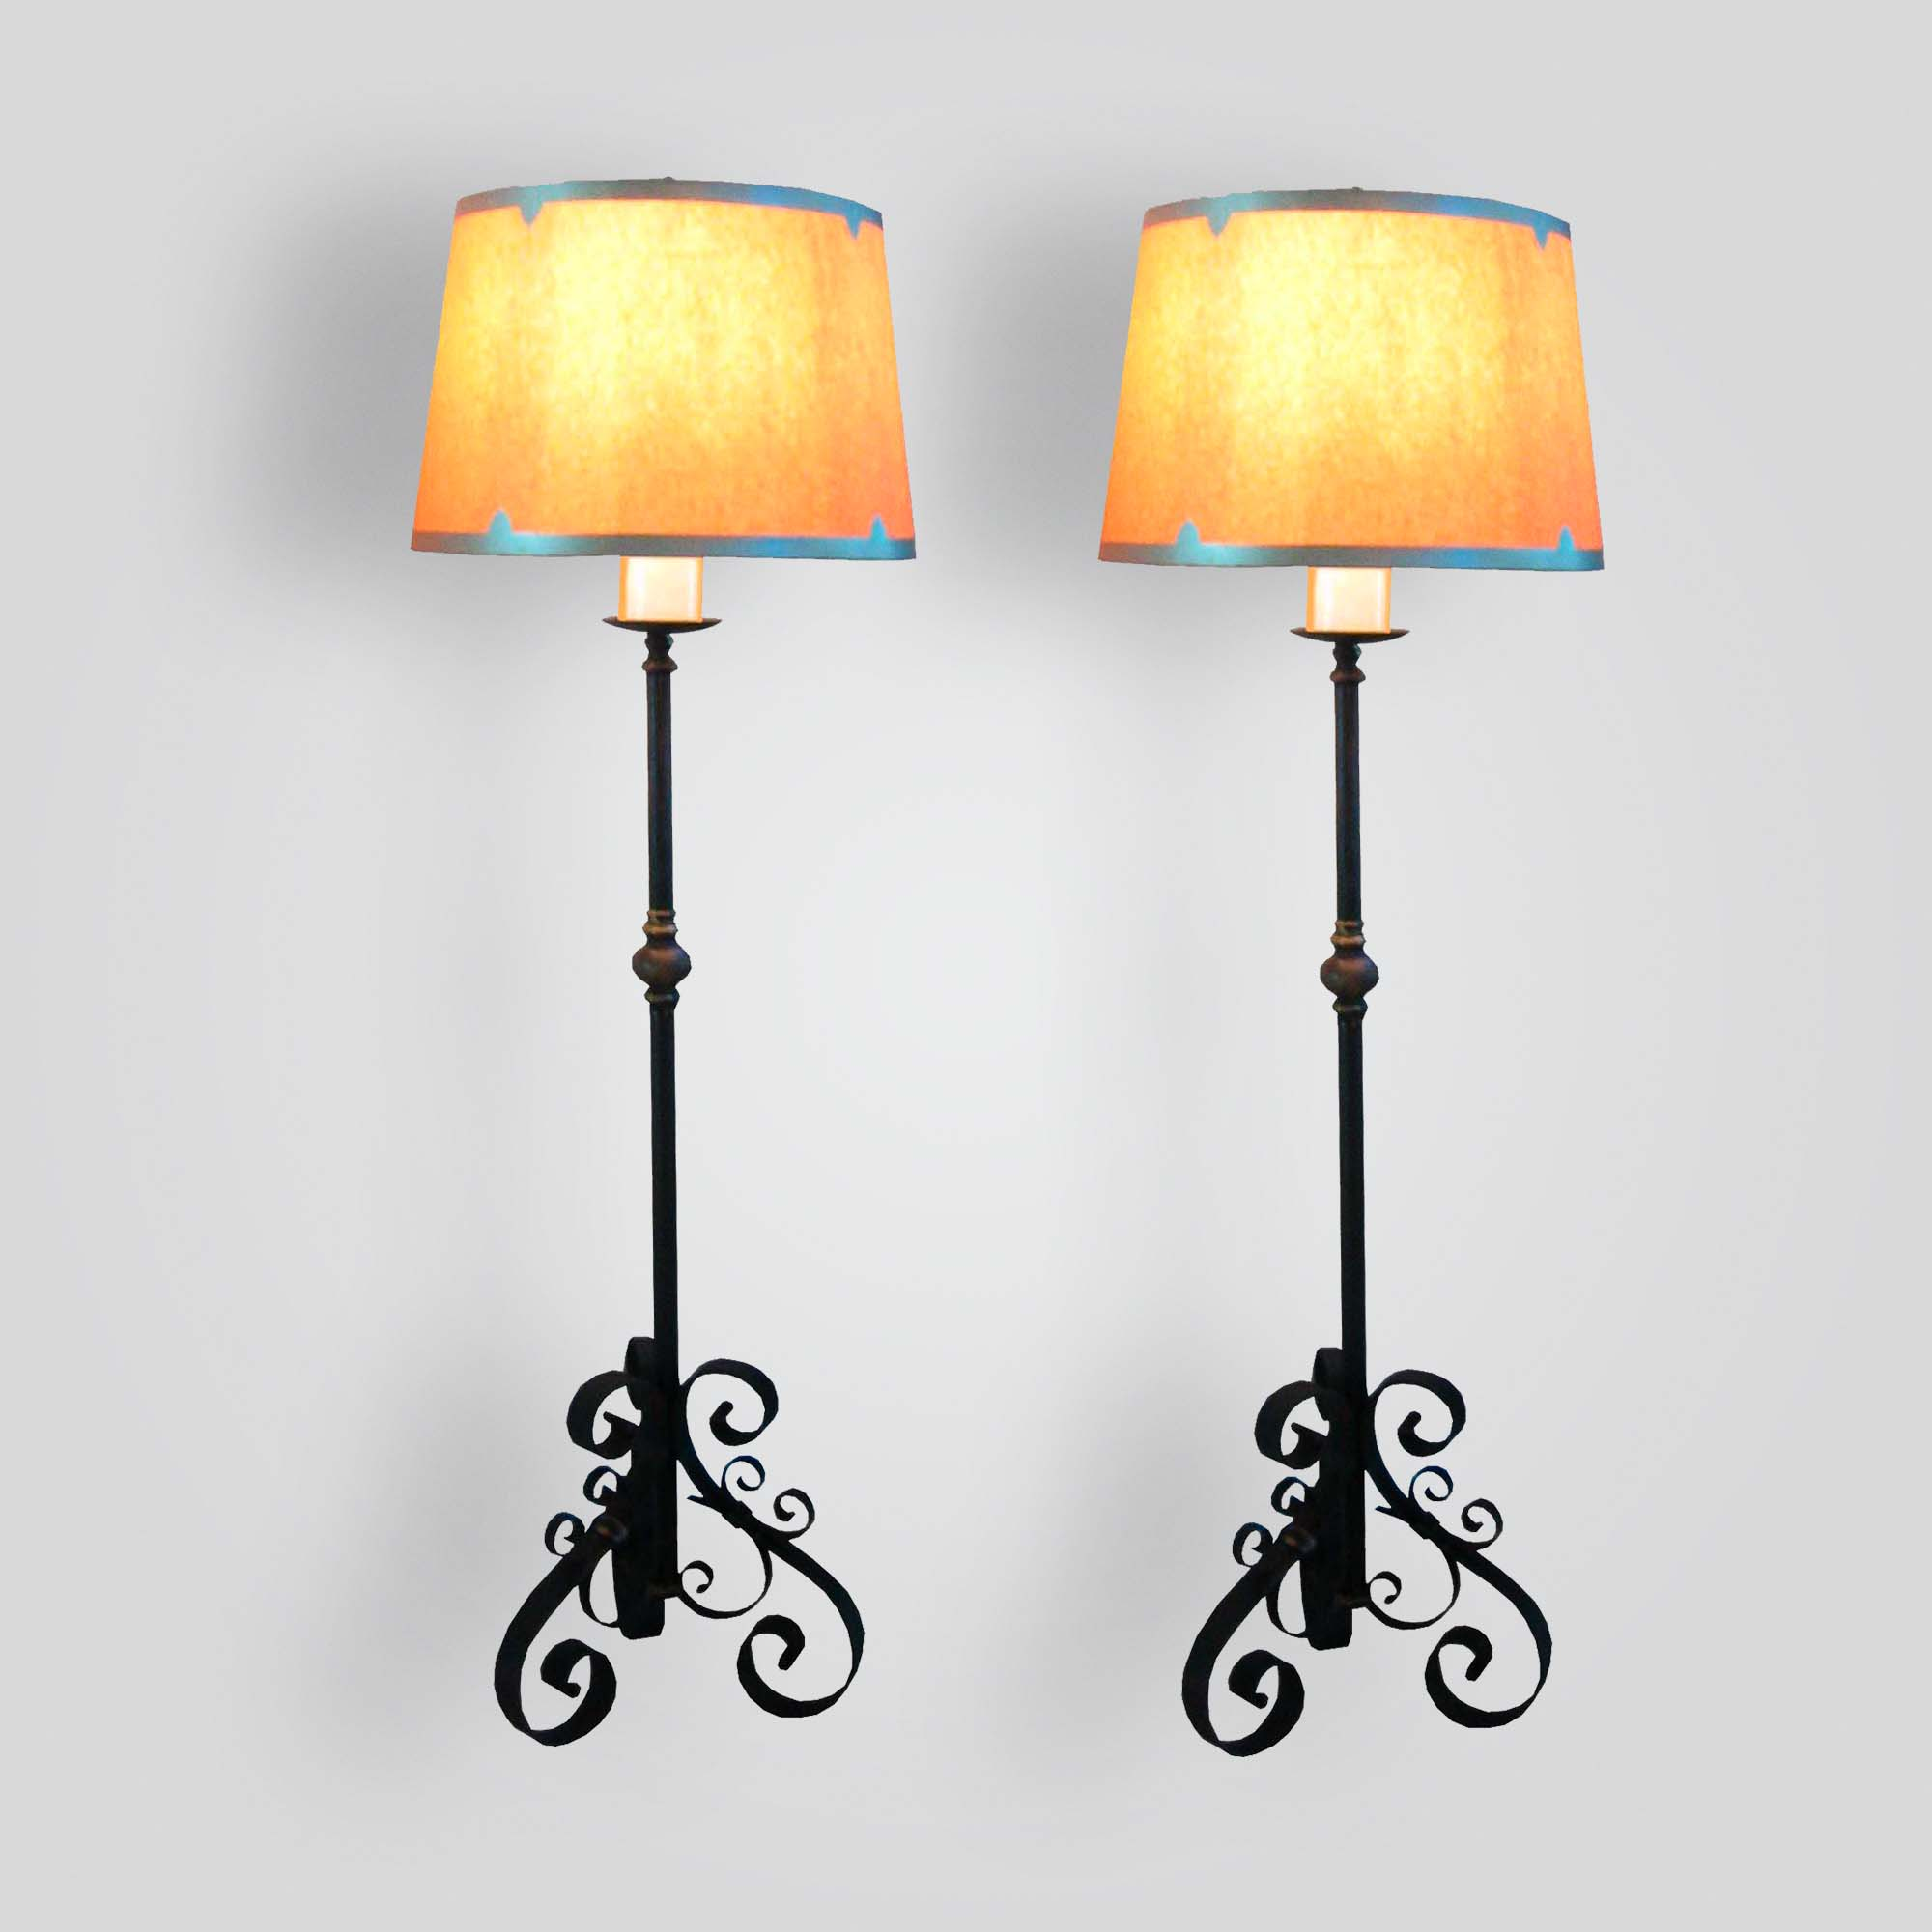 8030-mb1-ir-l-ba-monastary-floor-lamp-with-oiled-parchment-shade – ADG Lighting Collection